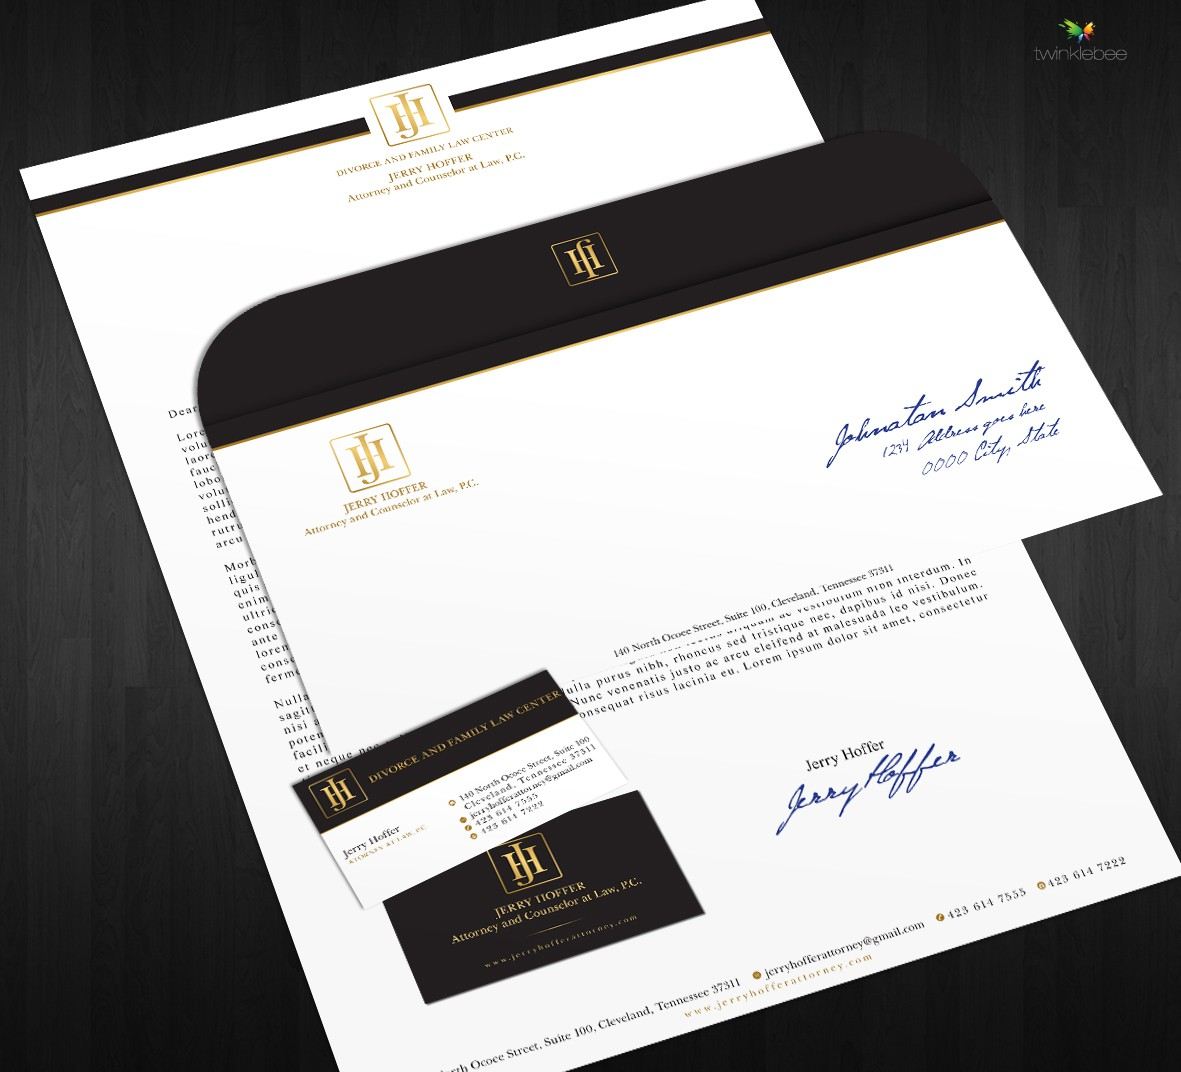 Help Jerry Hoffer Attorney at Law P.C. with a new stationery